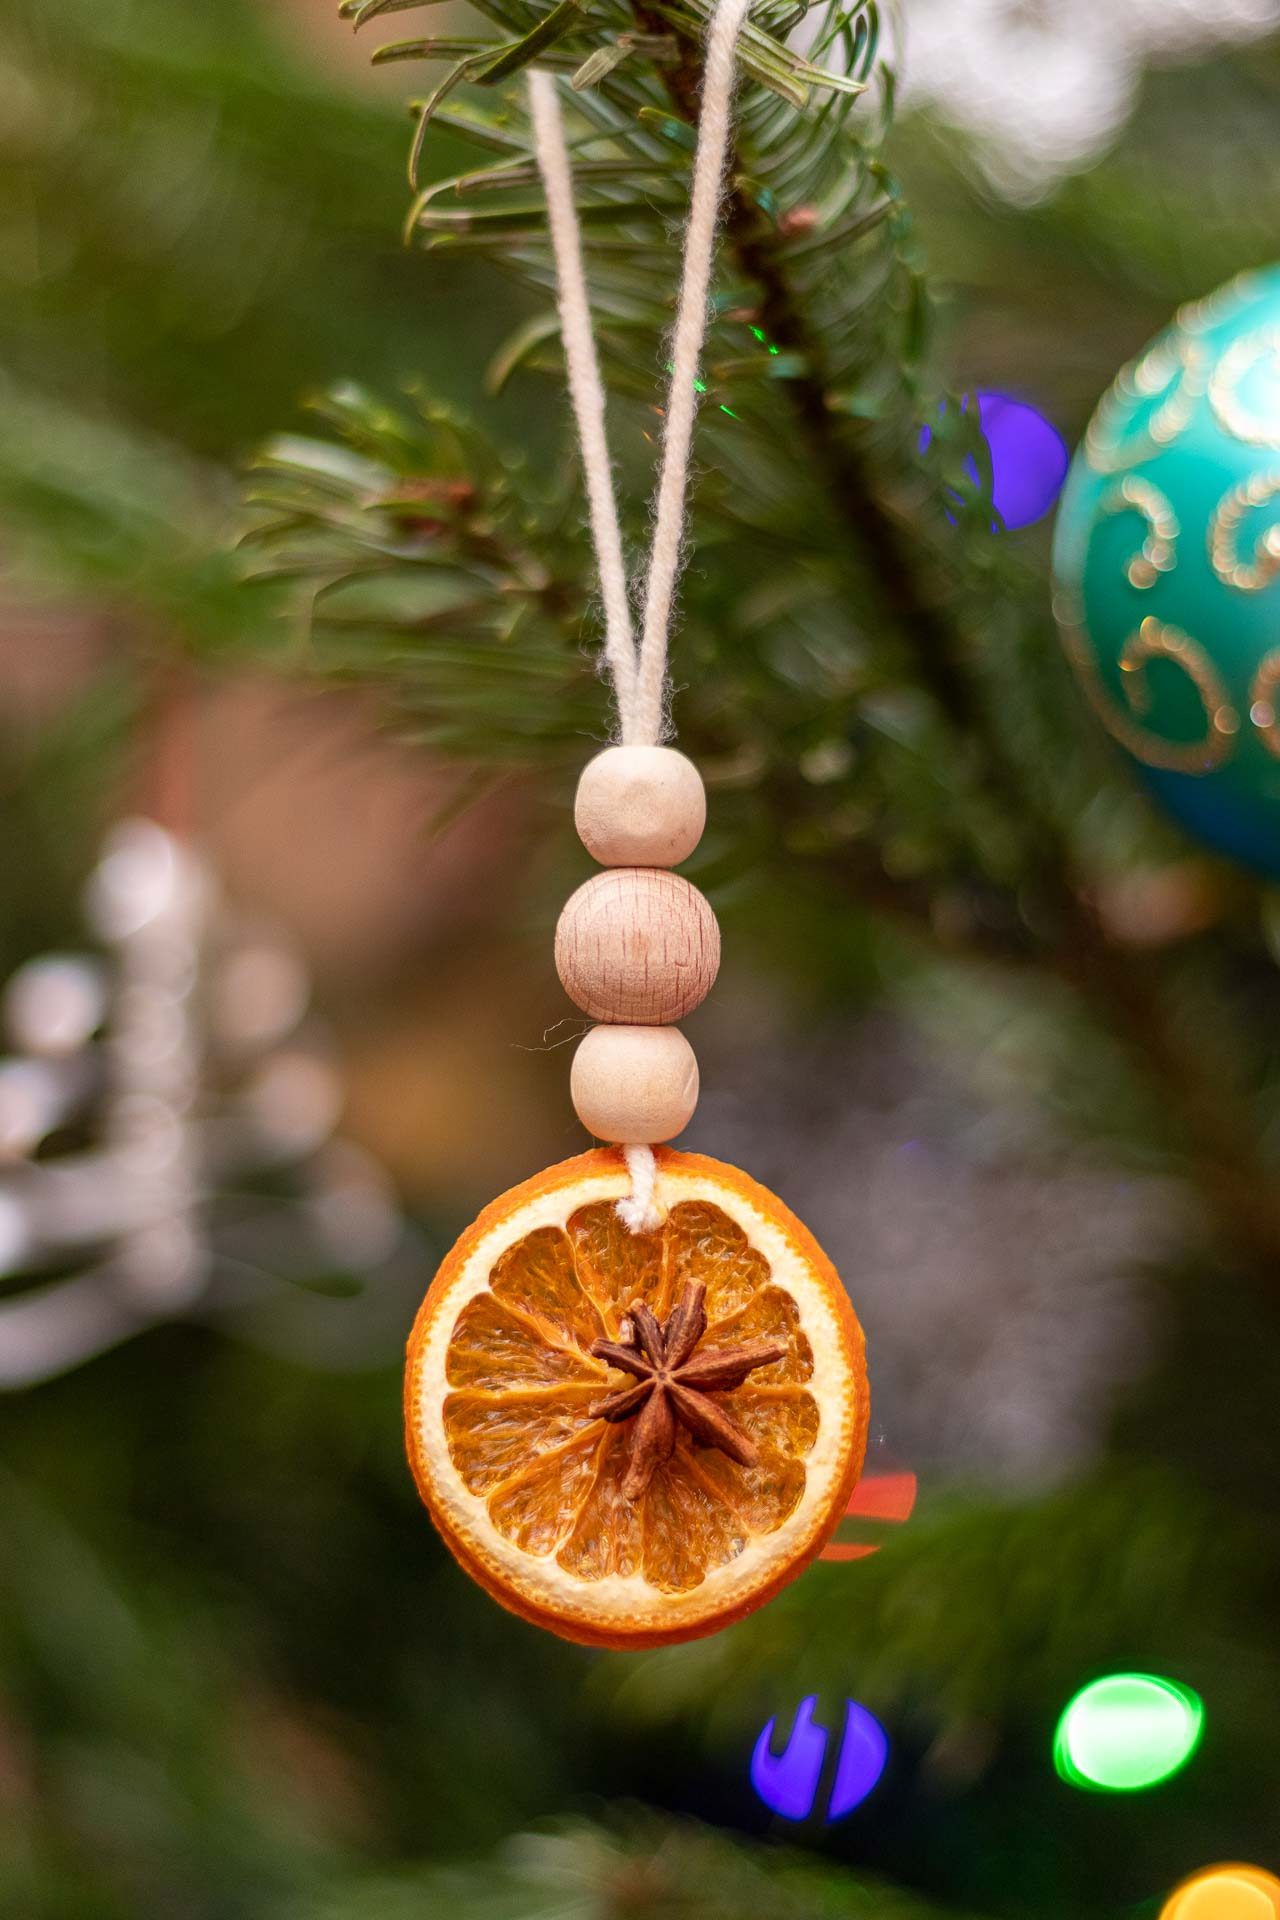 Diy Zero Waste Christmas Tree Decorations With Dried Orange Slices